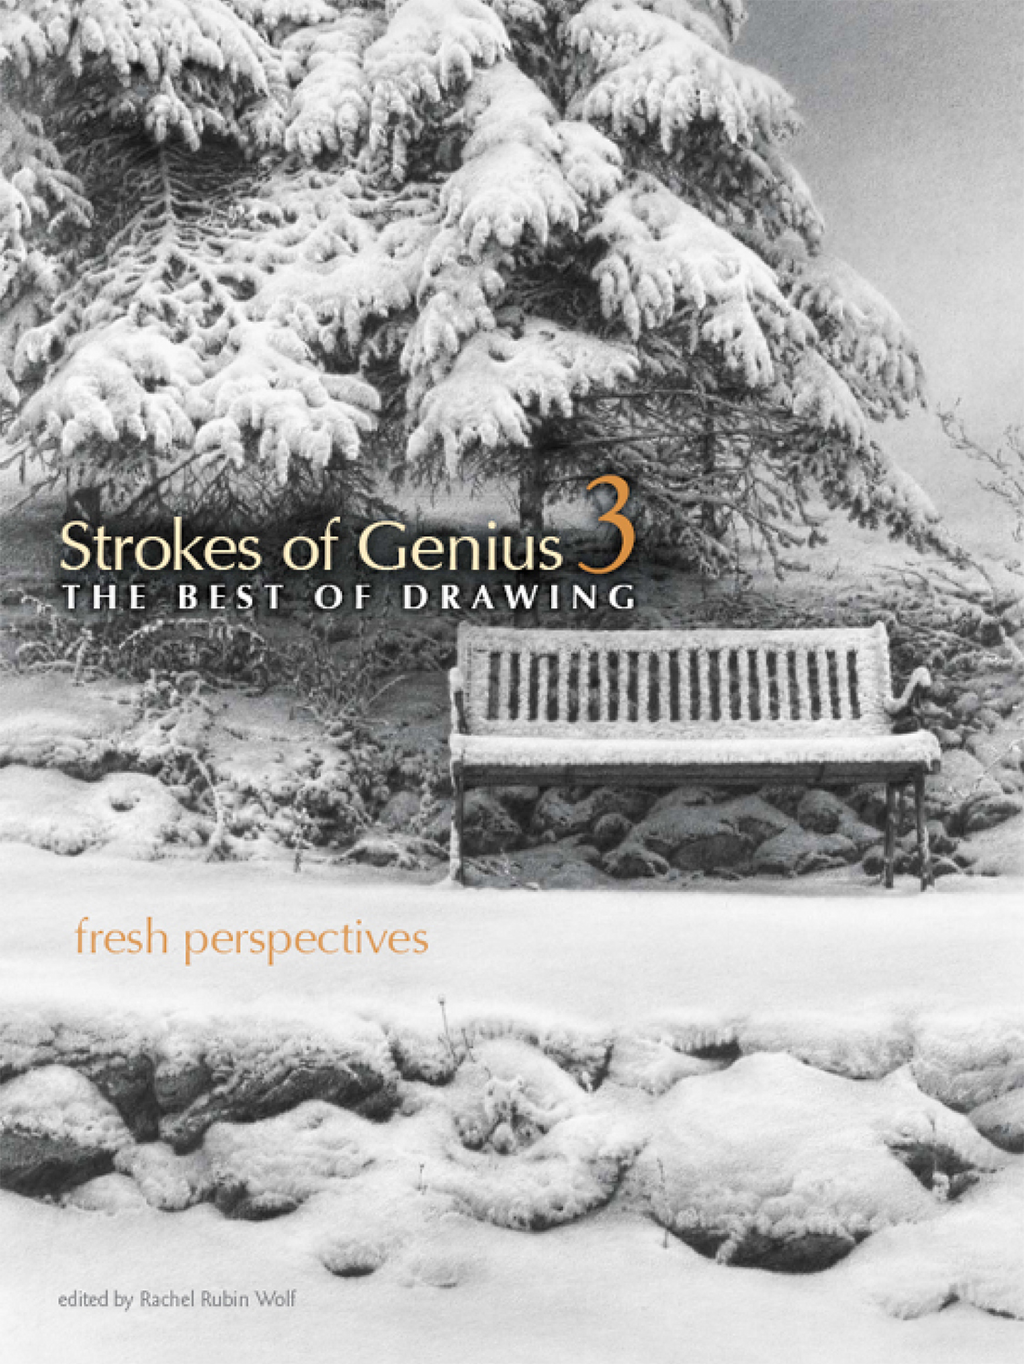 Strokes of Genius 3 - The Best of Drawing By: Rachel Rubin Wolf